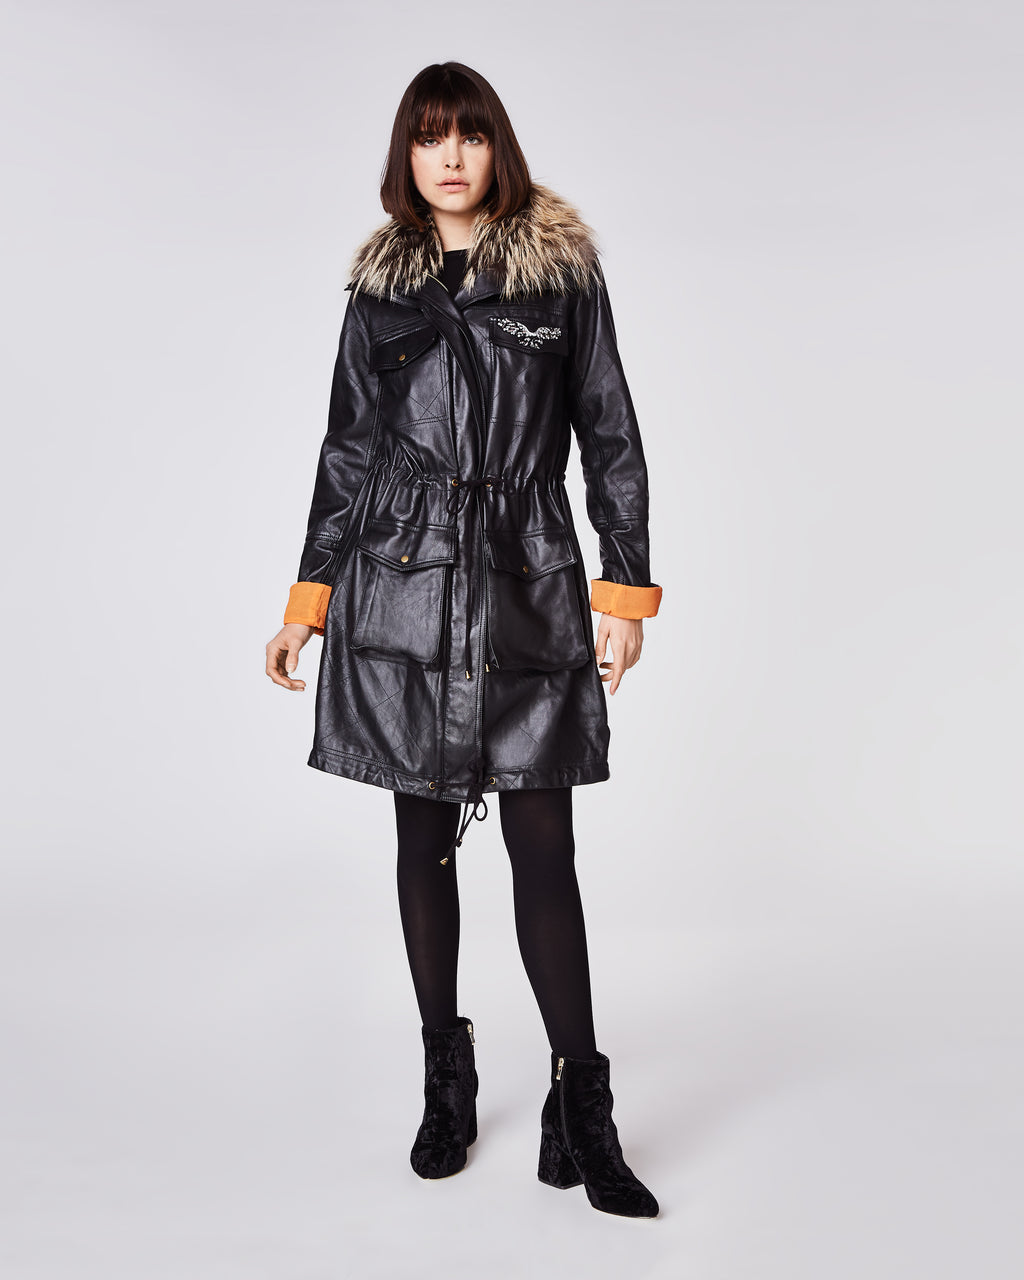 GH10010 - LEATHER PUFFER COAT - outerwear - leather - With quilted details, this leather puffer coat features a fox-trim along the collar and a draw string at the waist. Finished with an exposed zipper and embellished eagle. Fully lined.